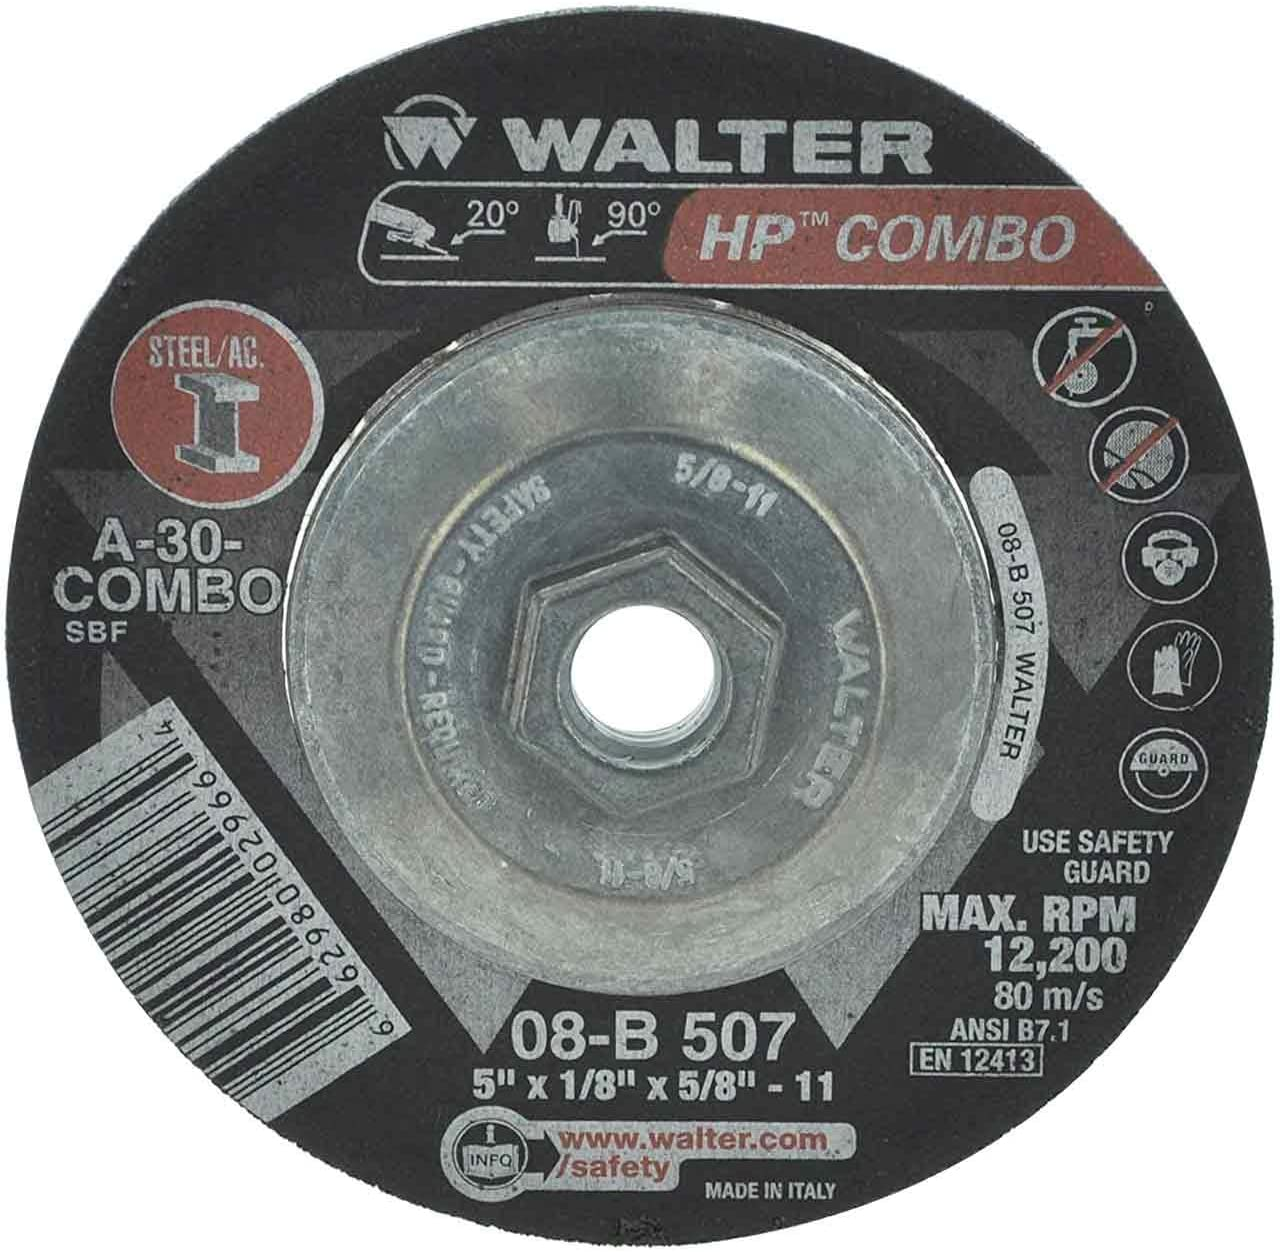 Walter 08B507 5x1/8x5/8-11 HP Combo Spin-On Metal Hub High Performance Cutting Grinding Wheels Type 27S Grade A-24, 10 pack